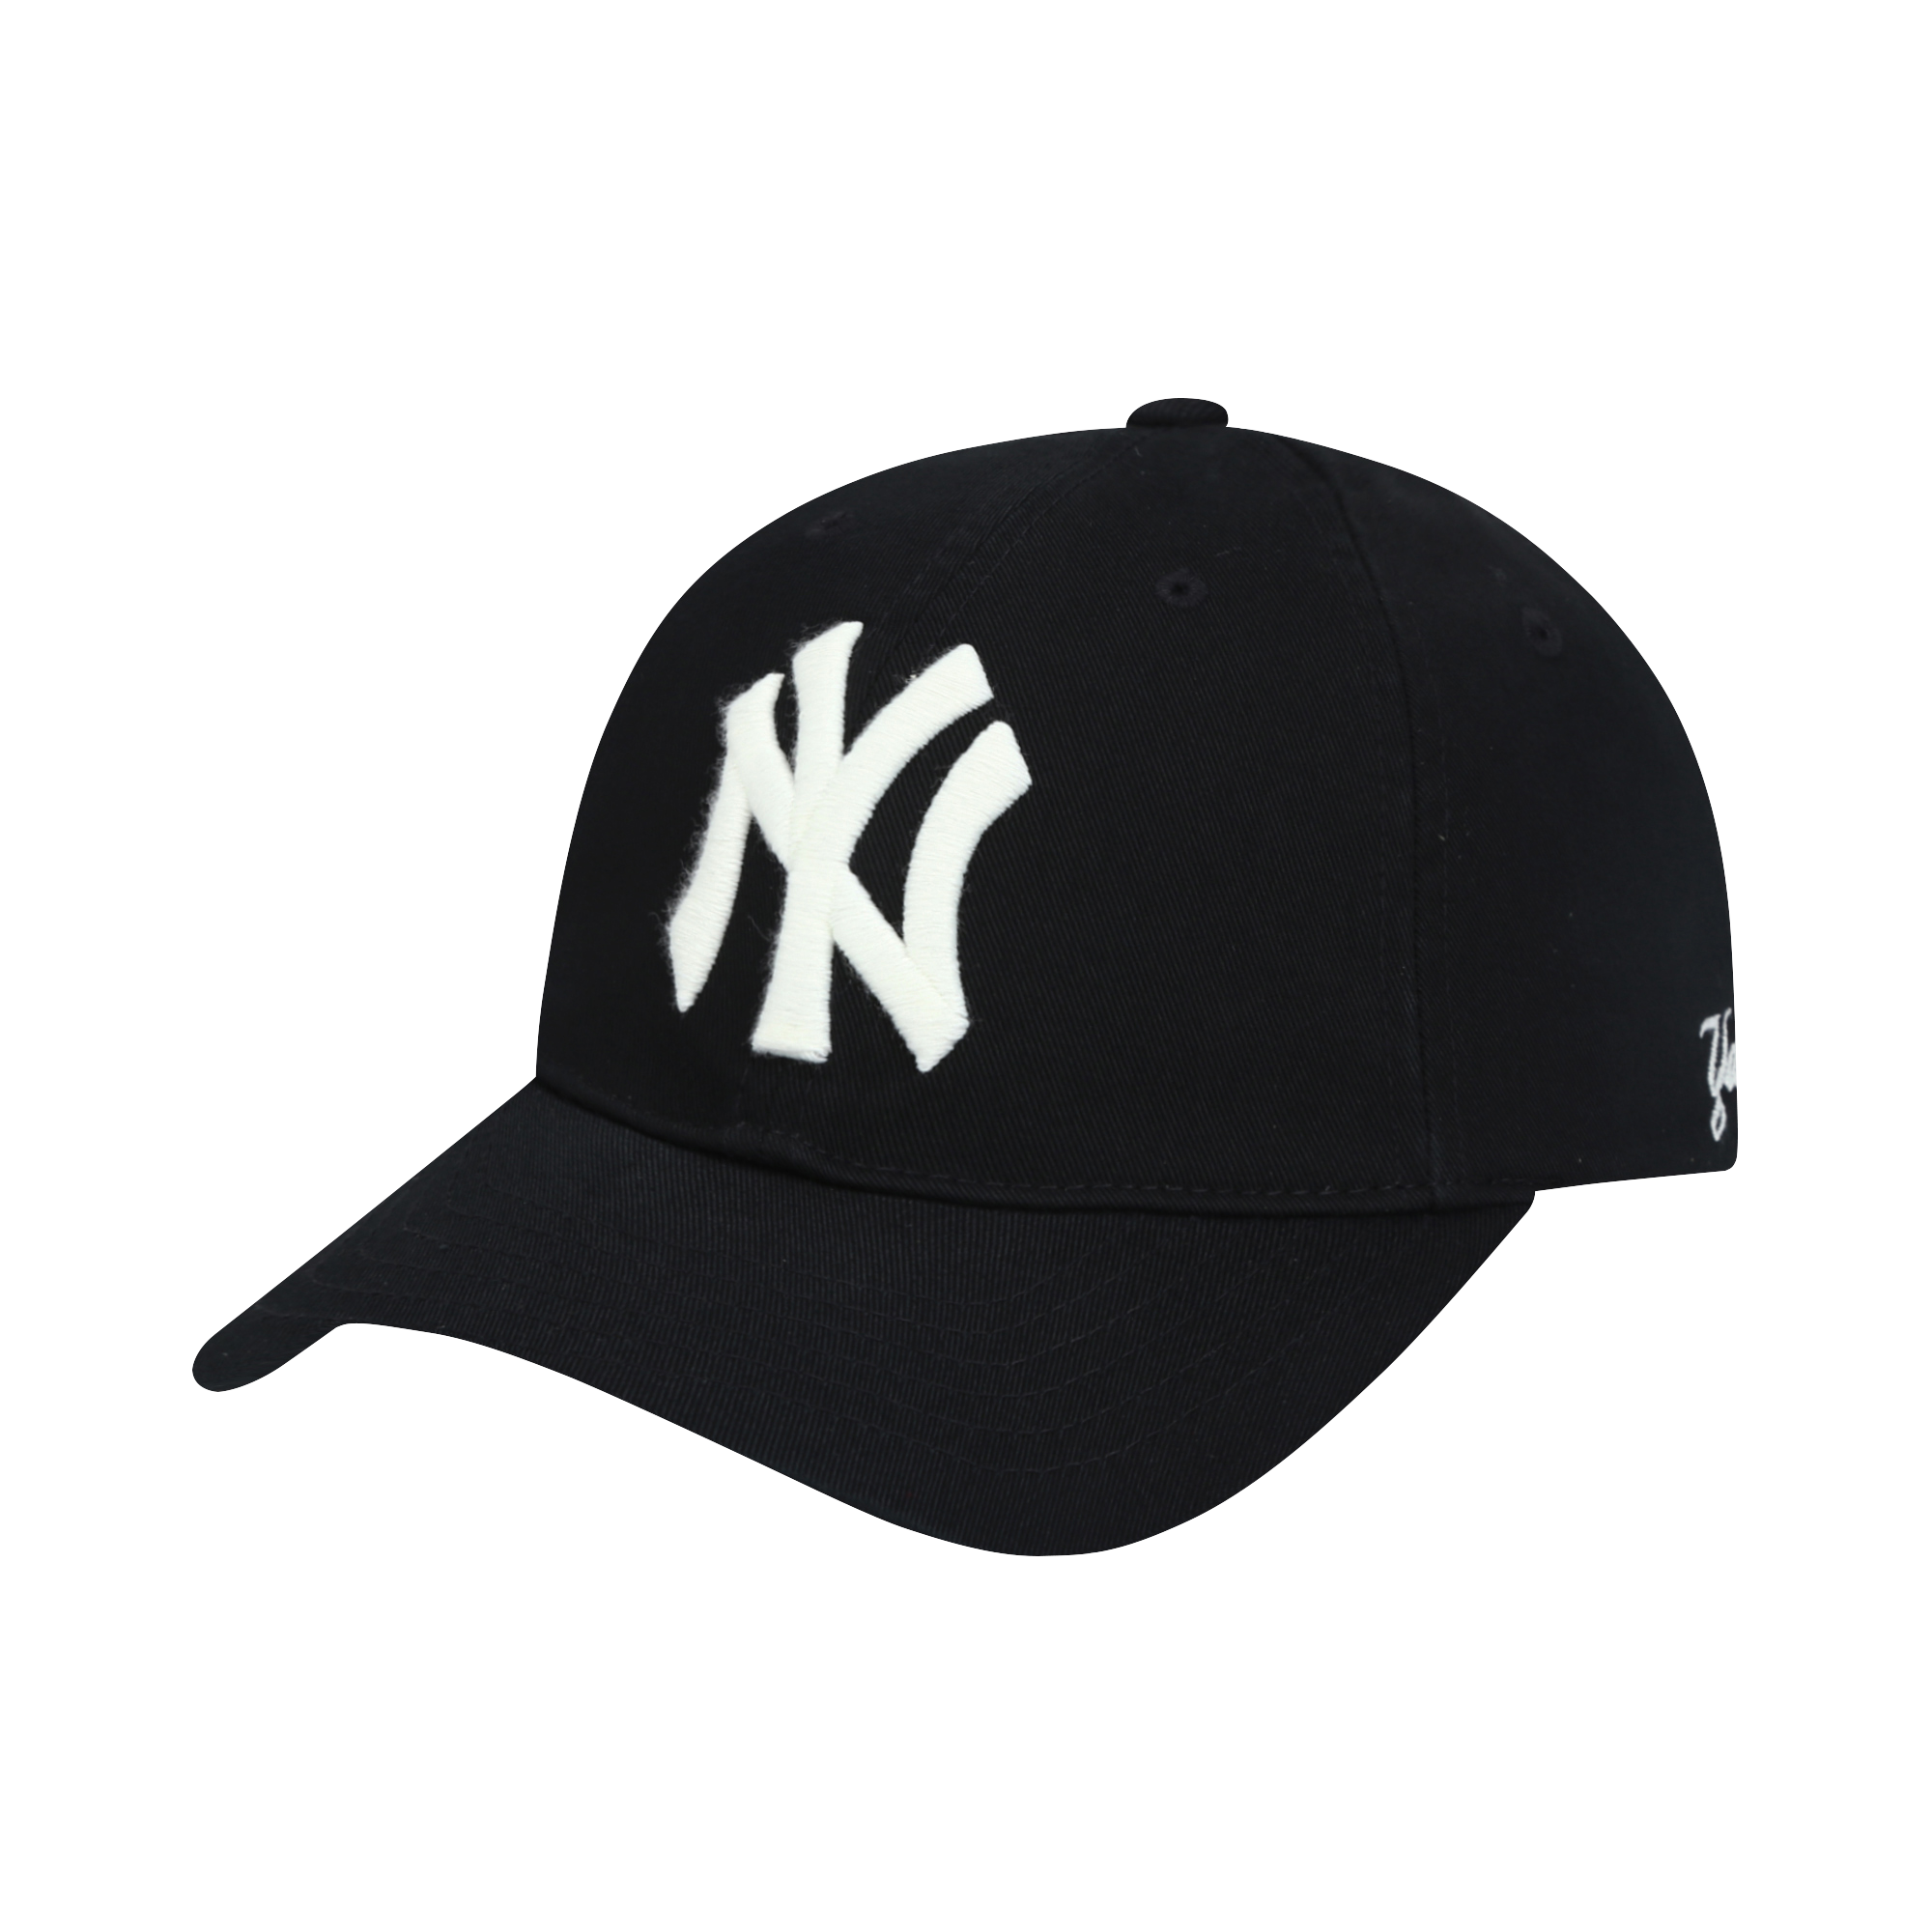 NEW YORK YANKEES SIDE CURSIVE BALL CAP